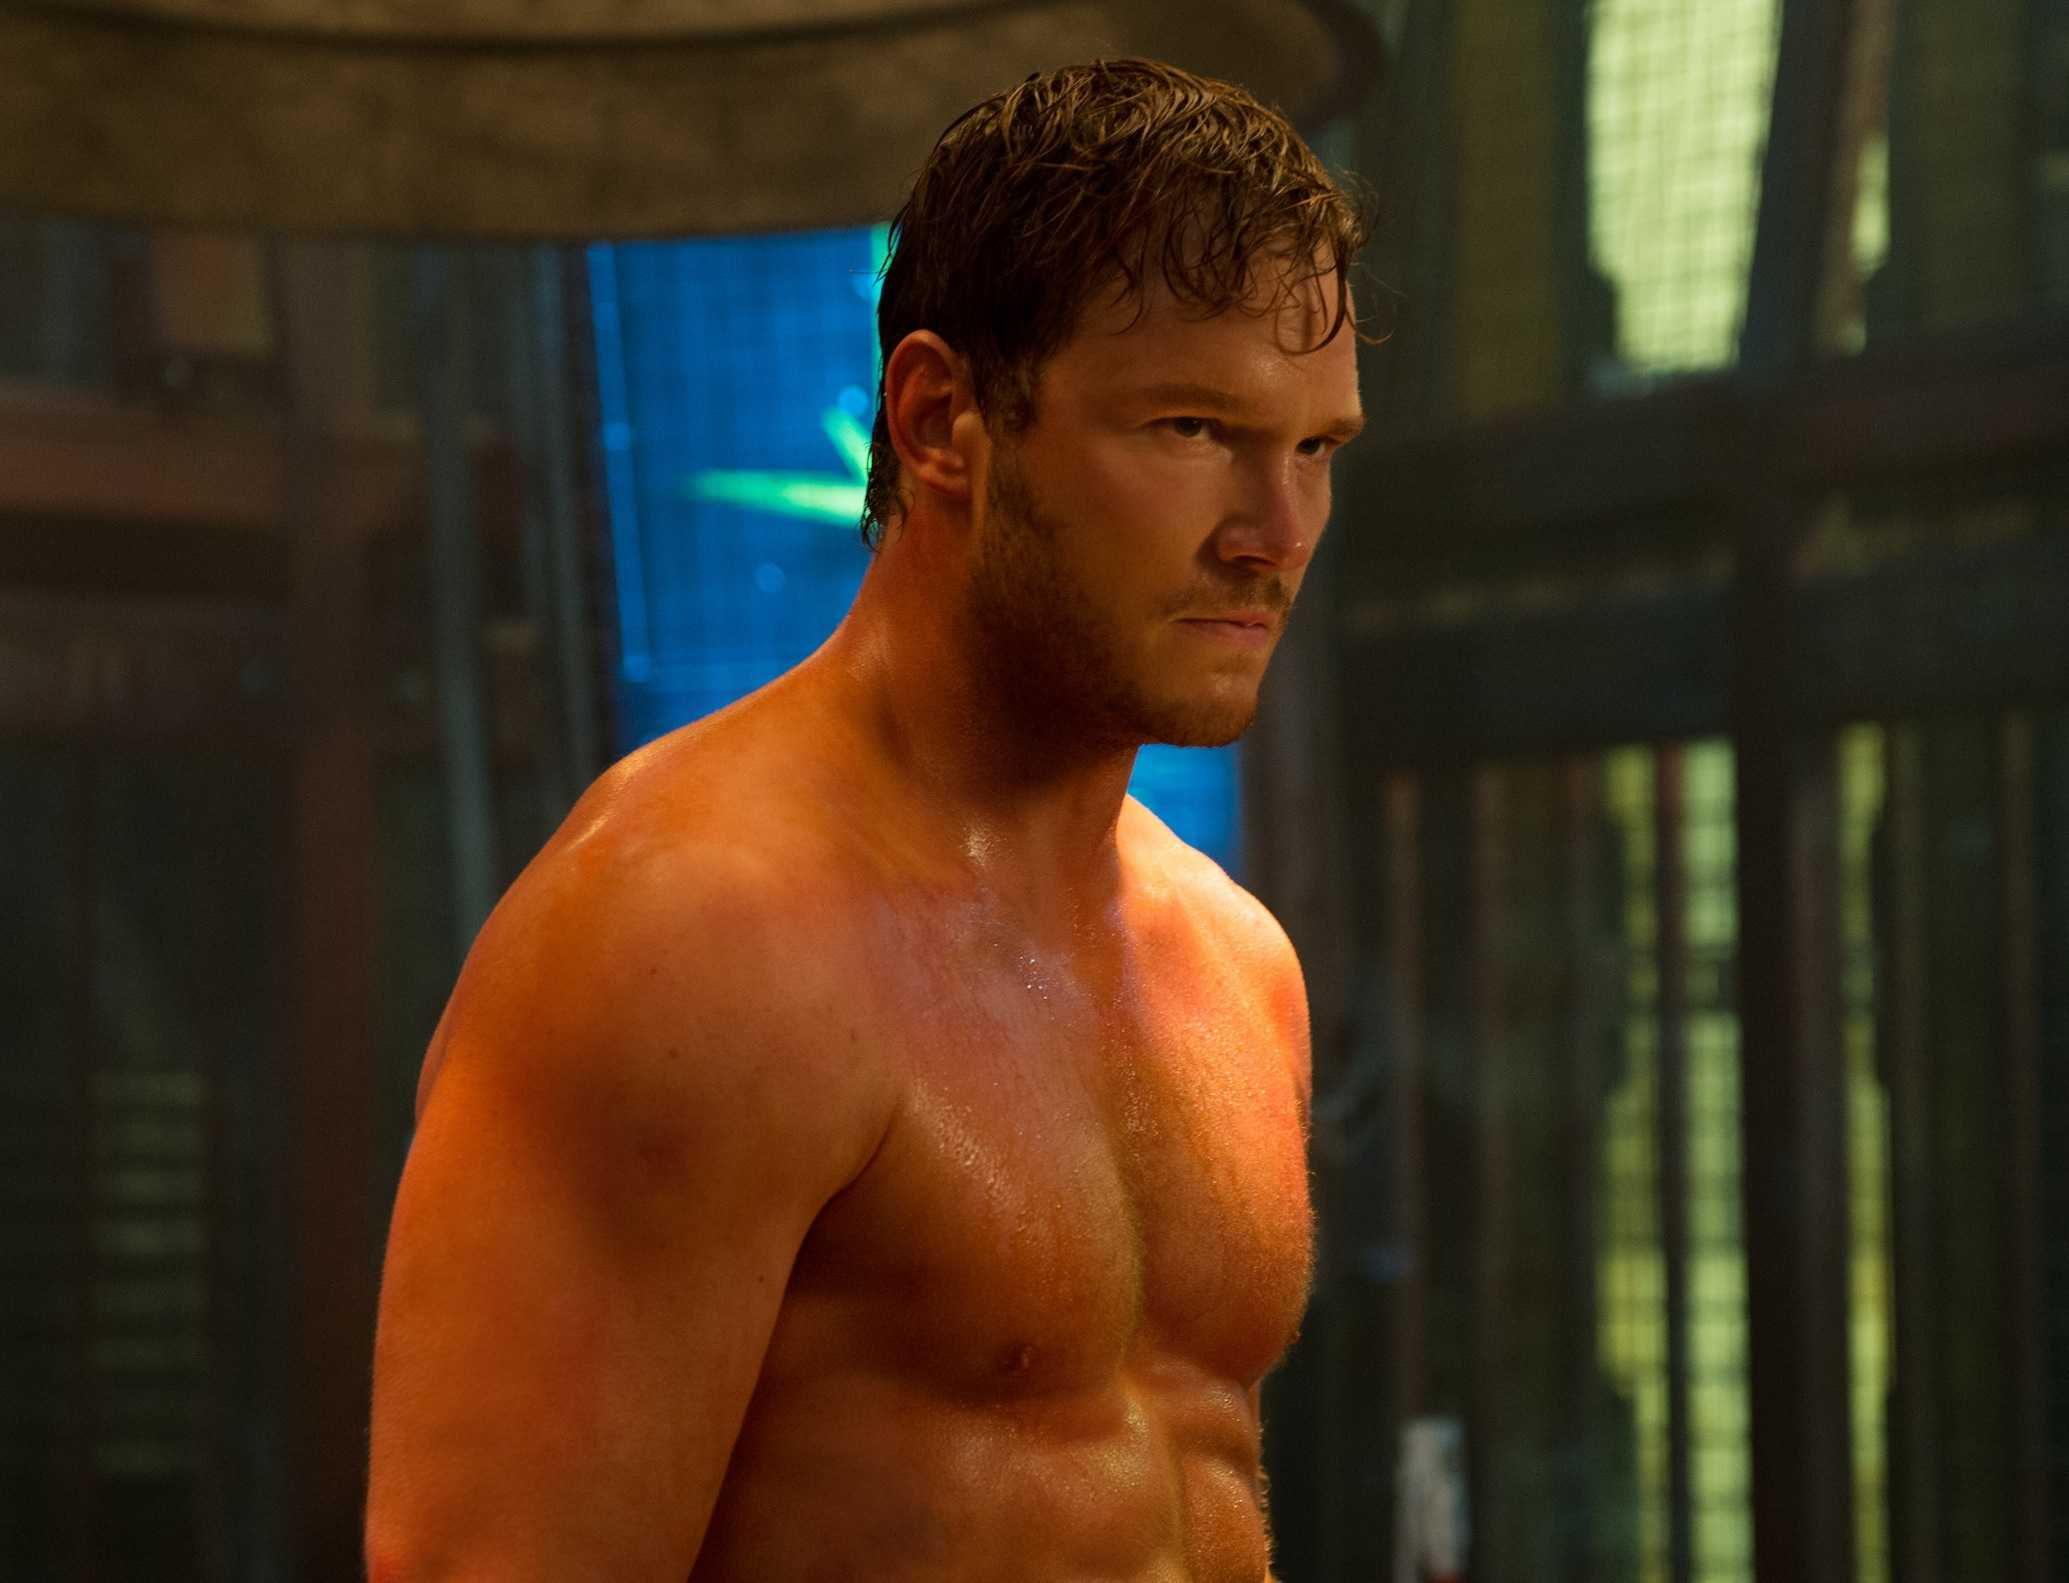 Chris Pratt plays Peter Quill, the leader of the